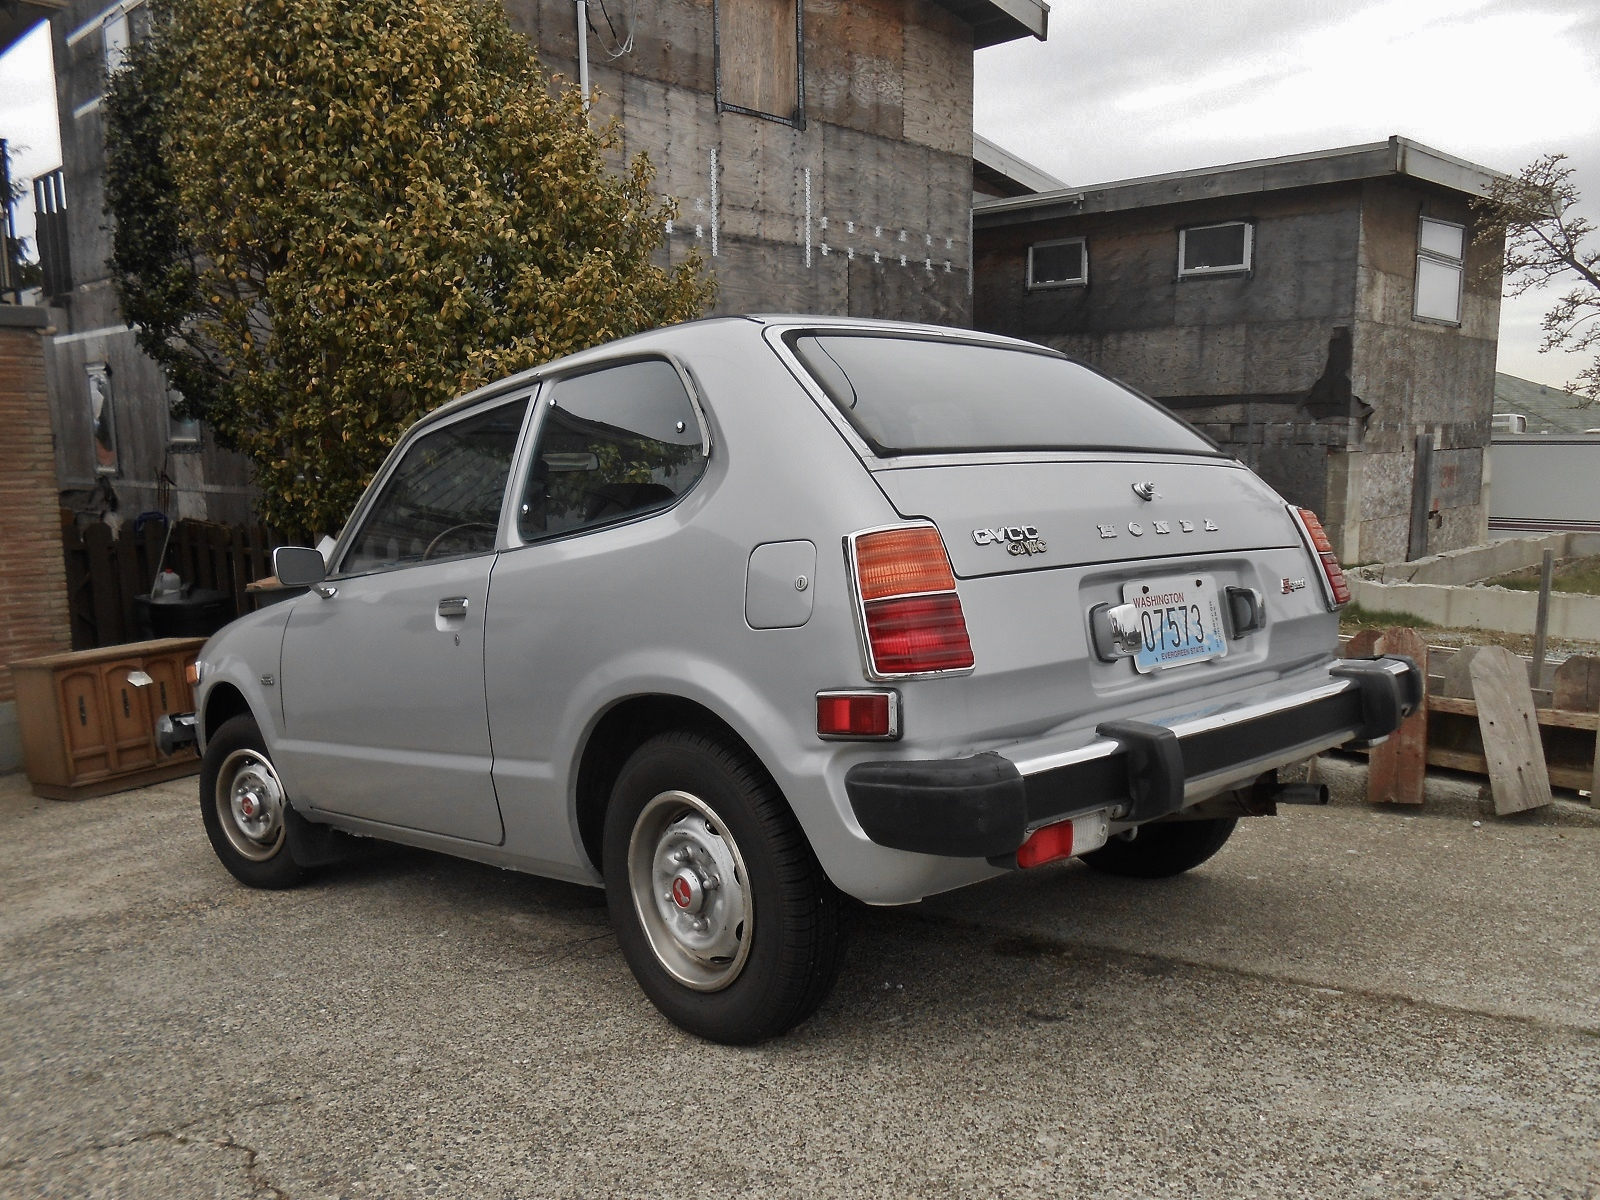 Seattle 39 s parked cars 1978 honda civic cvcc for 1978 honda civic